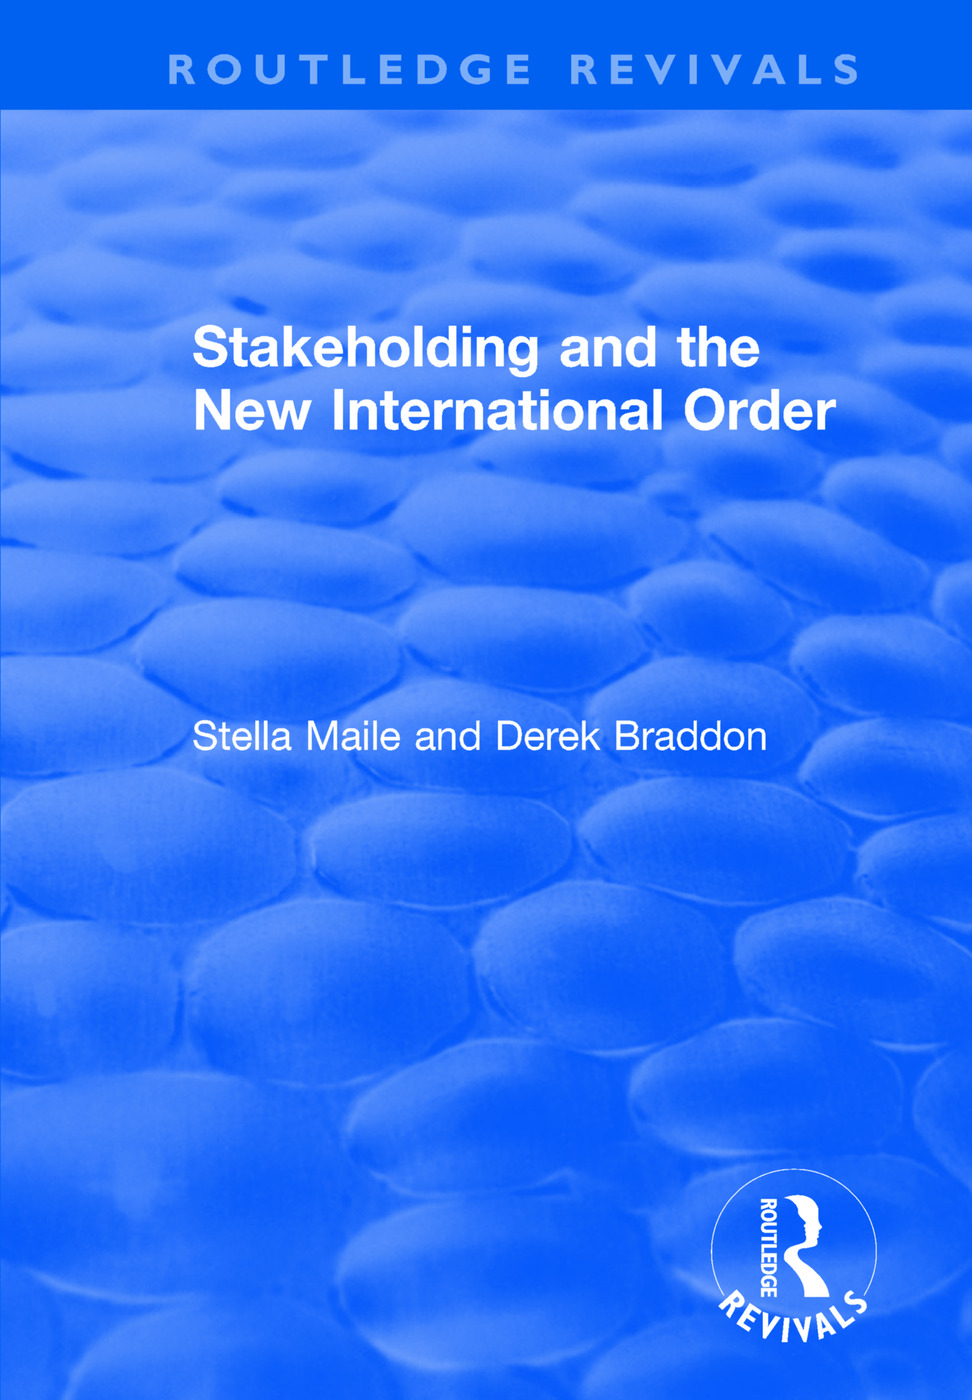 Stakeholding and the New International Order